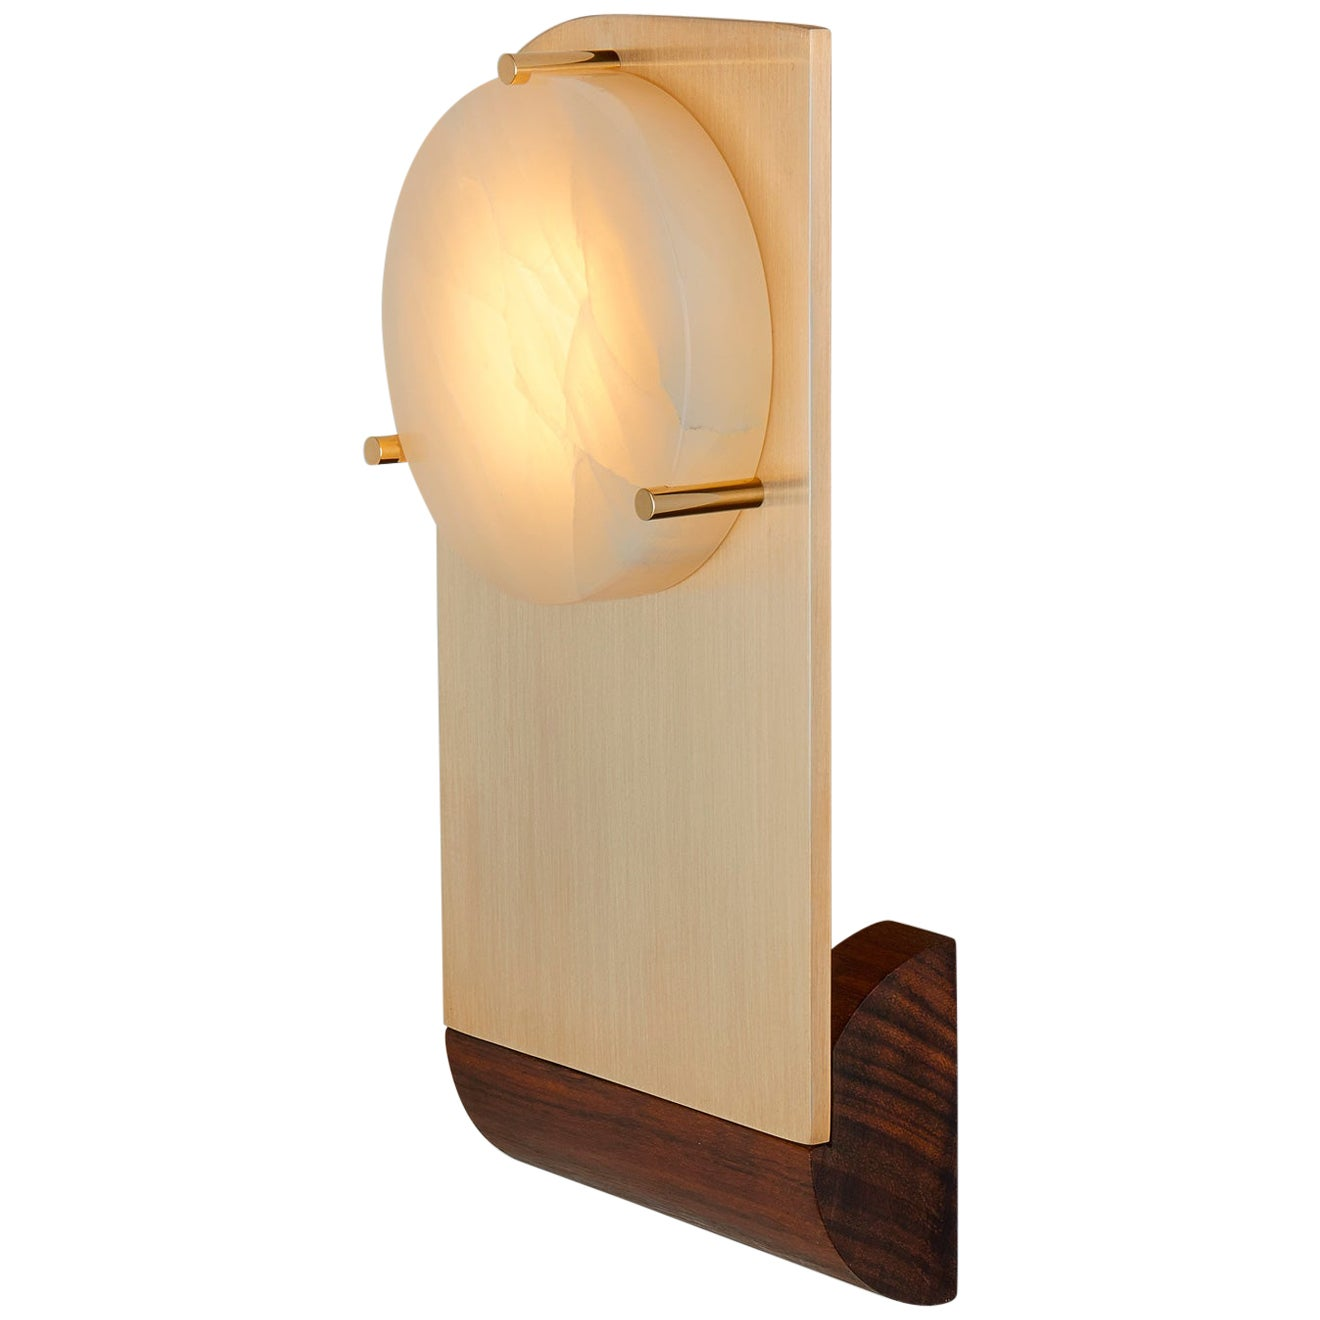 Polifemo Sconce Contemporary Sculptural Wall Light Fixture Brass Onyx Wood